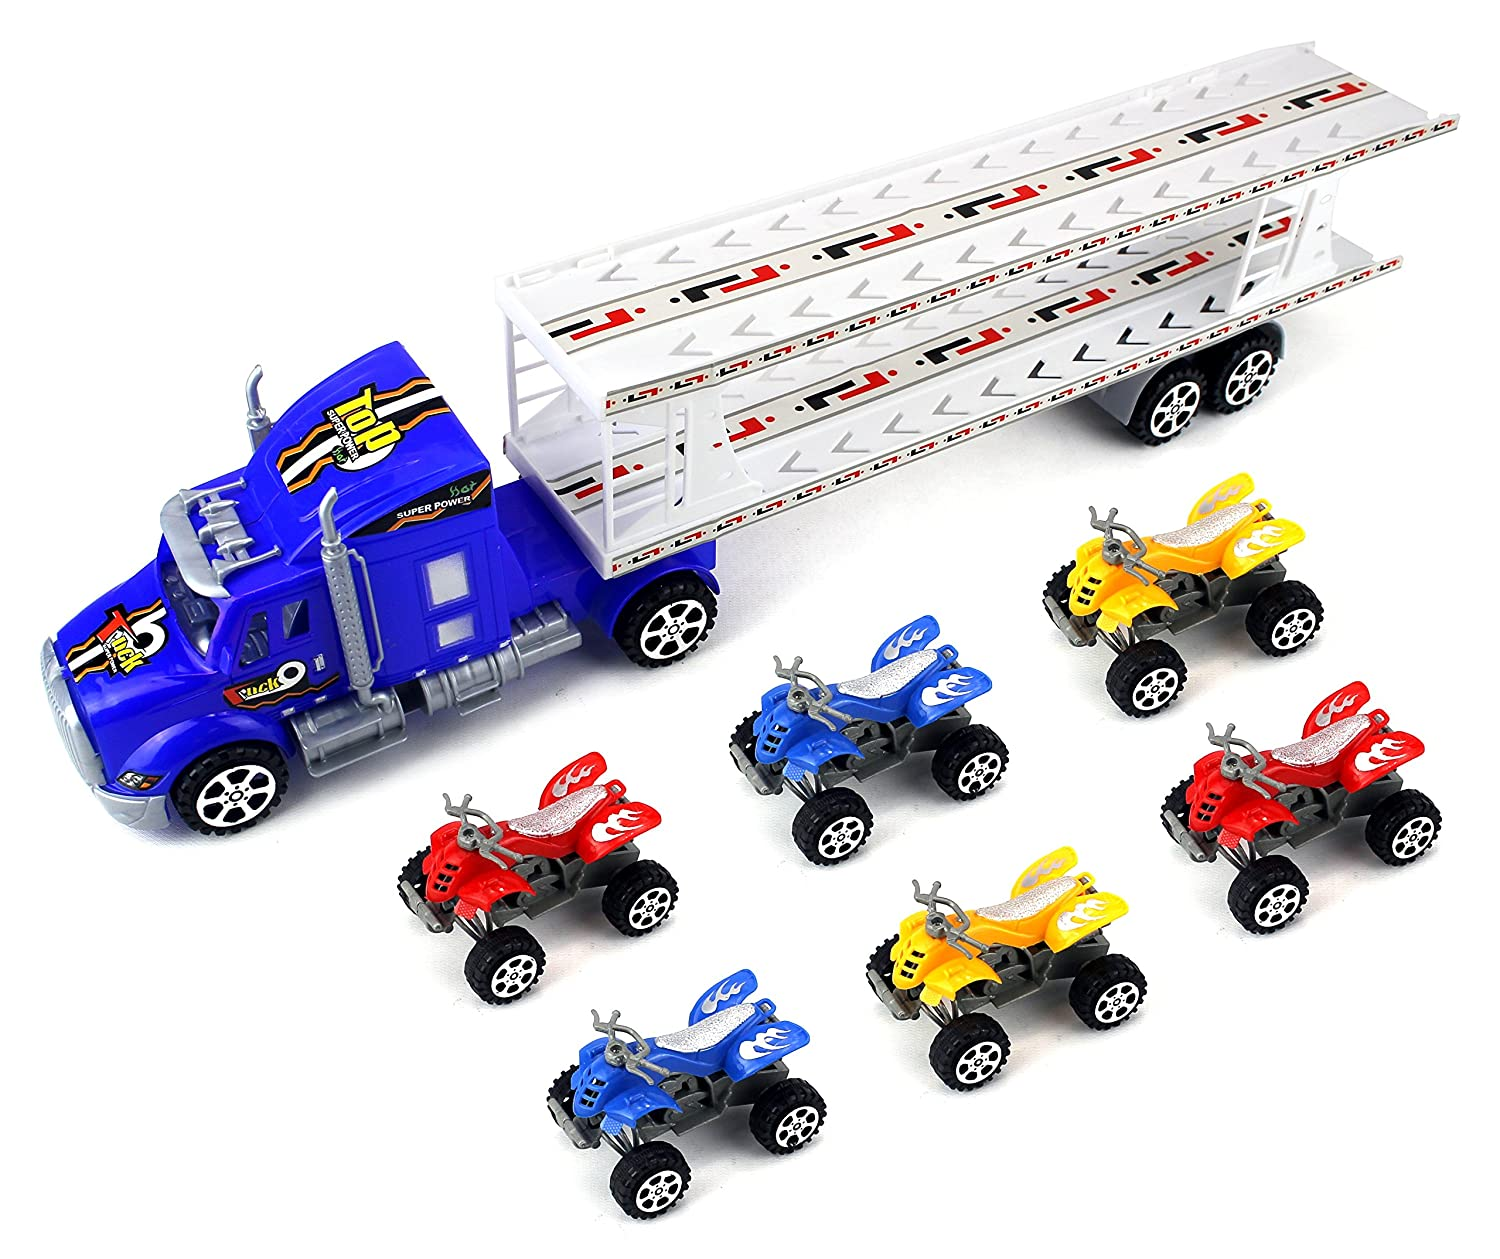 Top Transporterトレーラー子供の摩擦Toy Semiトラックを実行する準備W / 6おもちゃATVs ( Colors May Vary ) B01M7VLY9Y